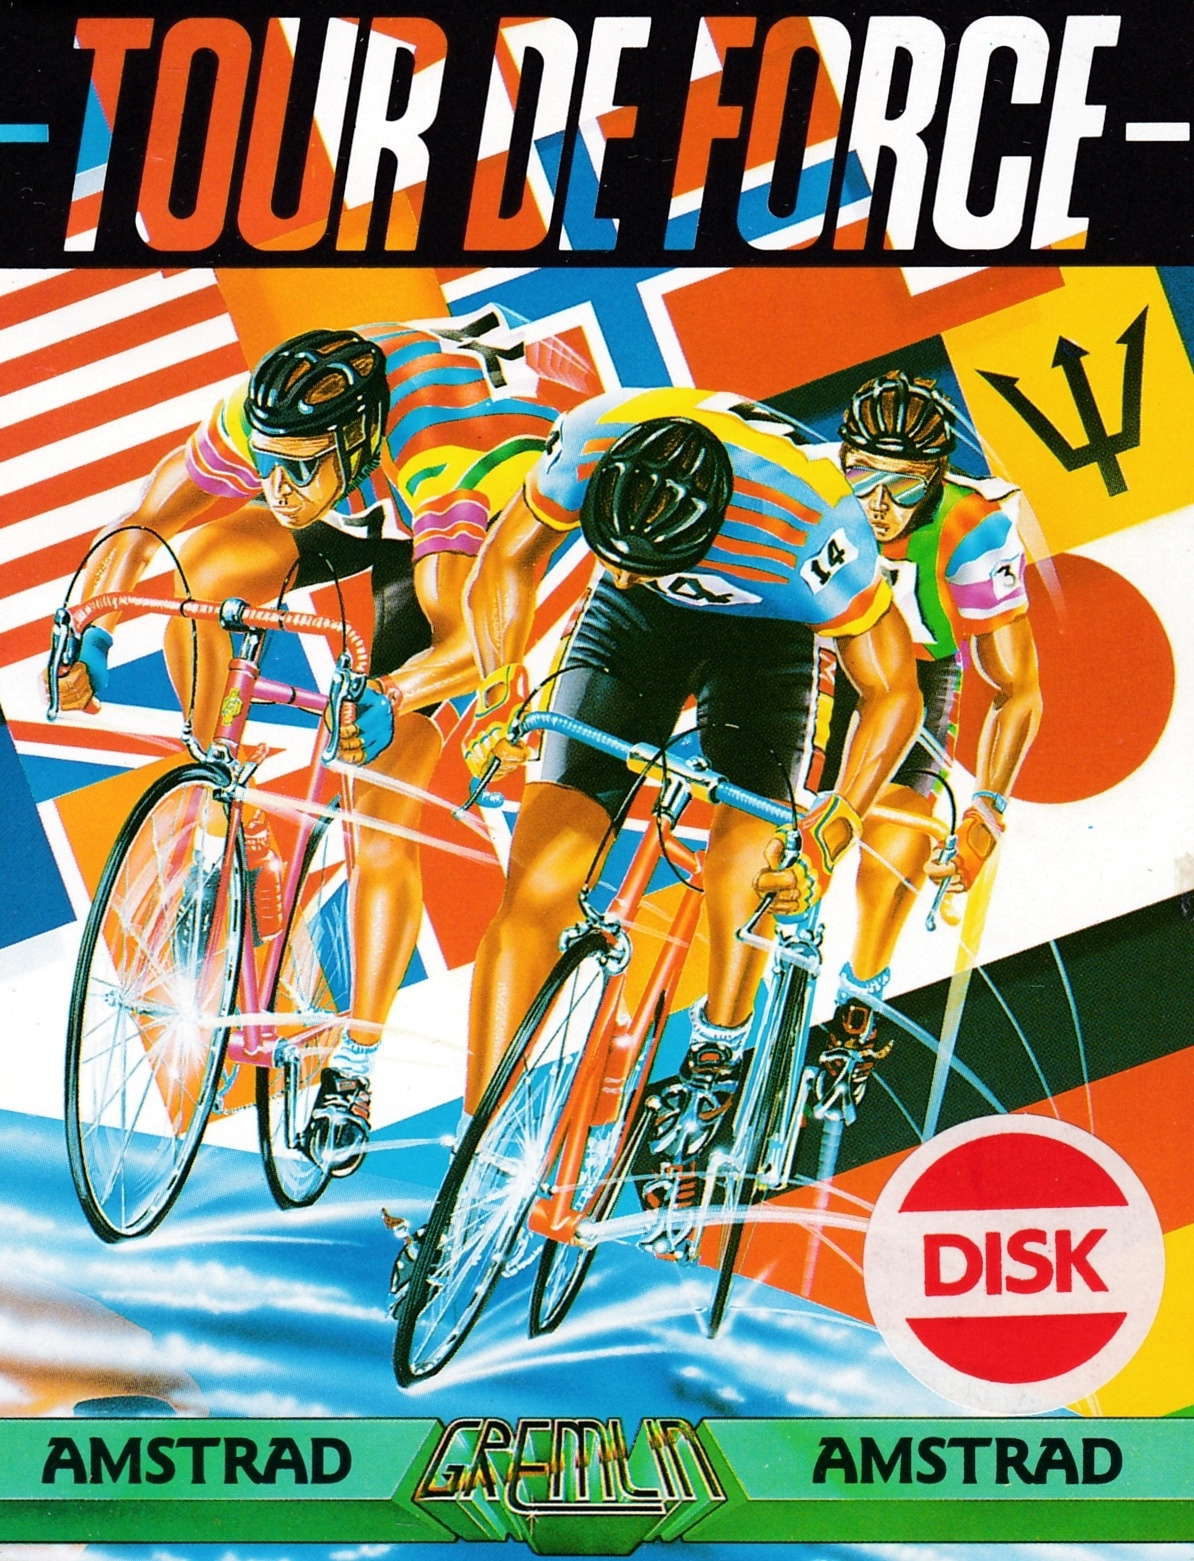 screenshot of the Amstrad CPC game Tour de force by GameBase CPC